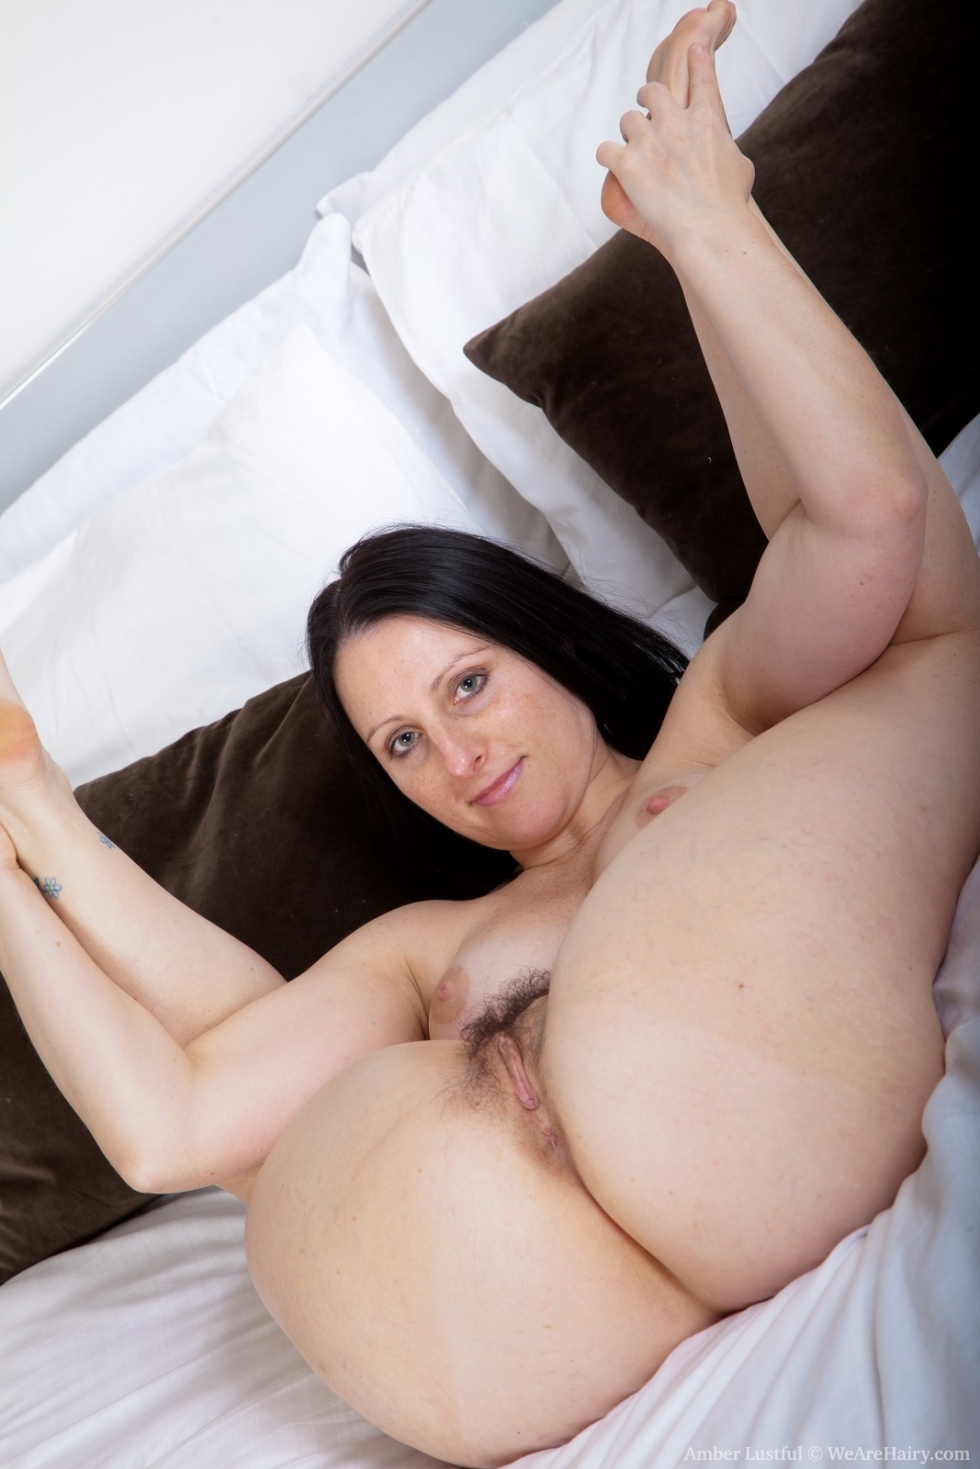 Beautiful milf laying on a bed 6